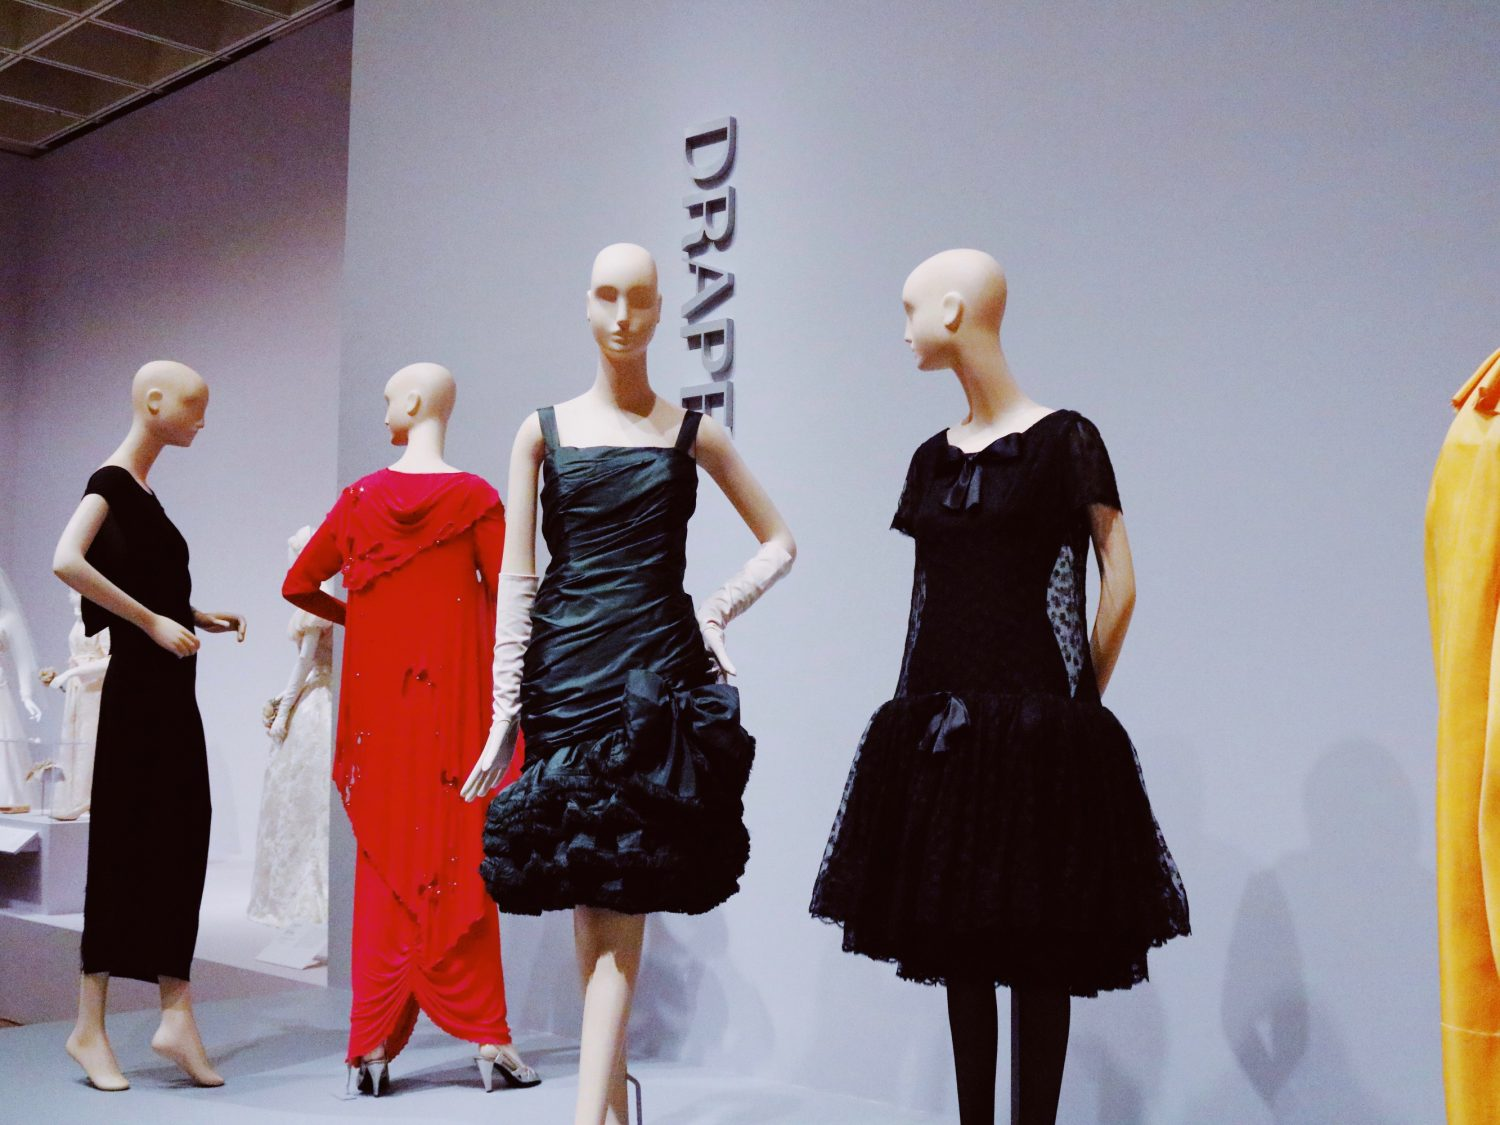 Fabulous Fashion: From Dior's New Look to Now